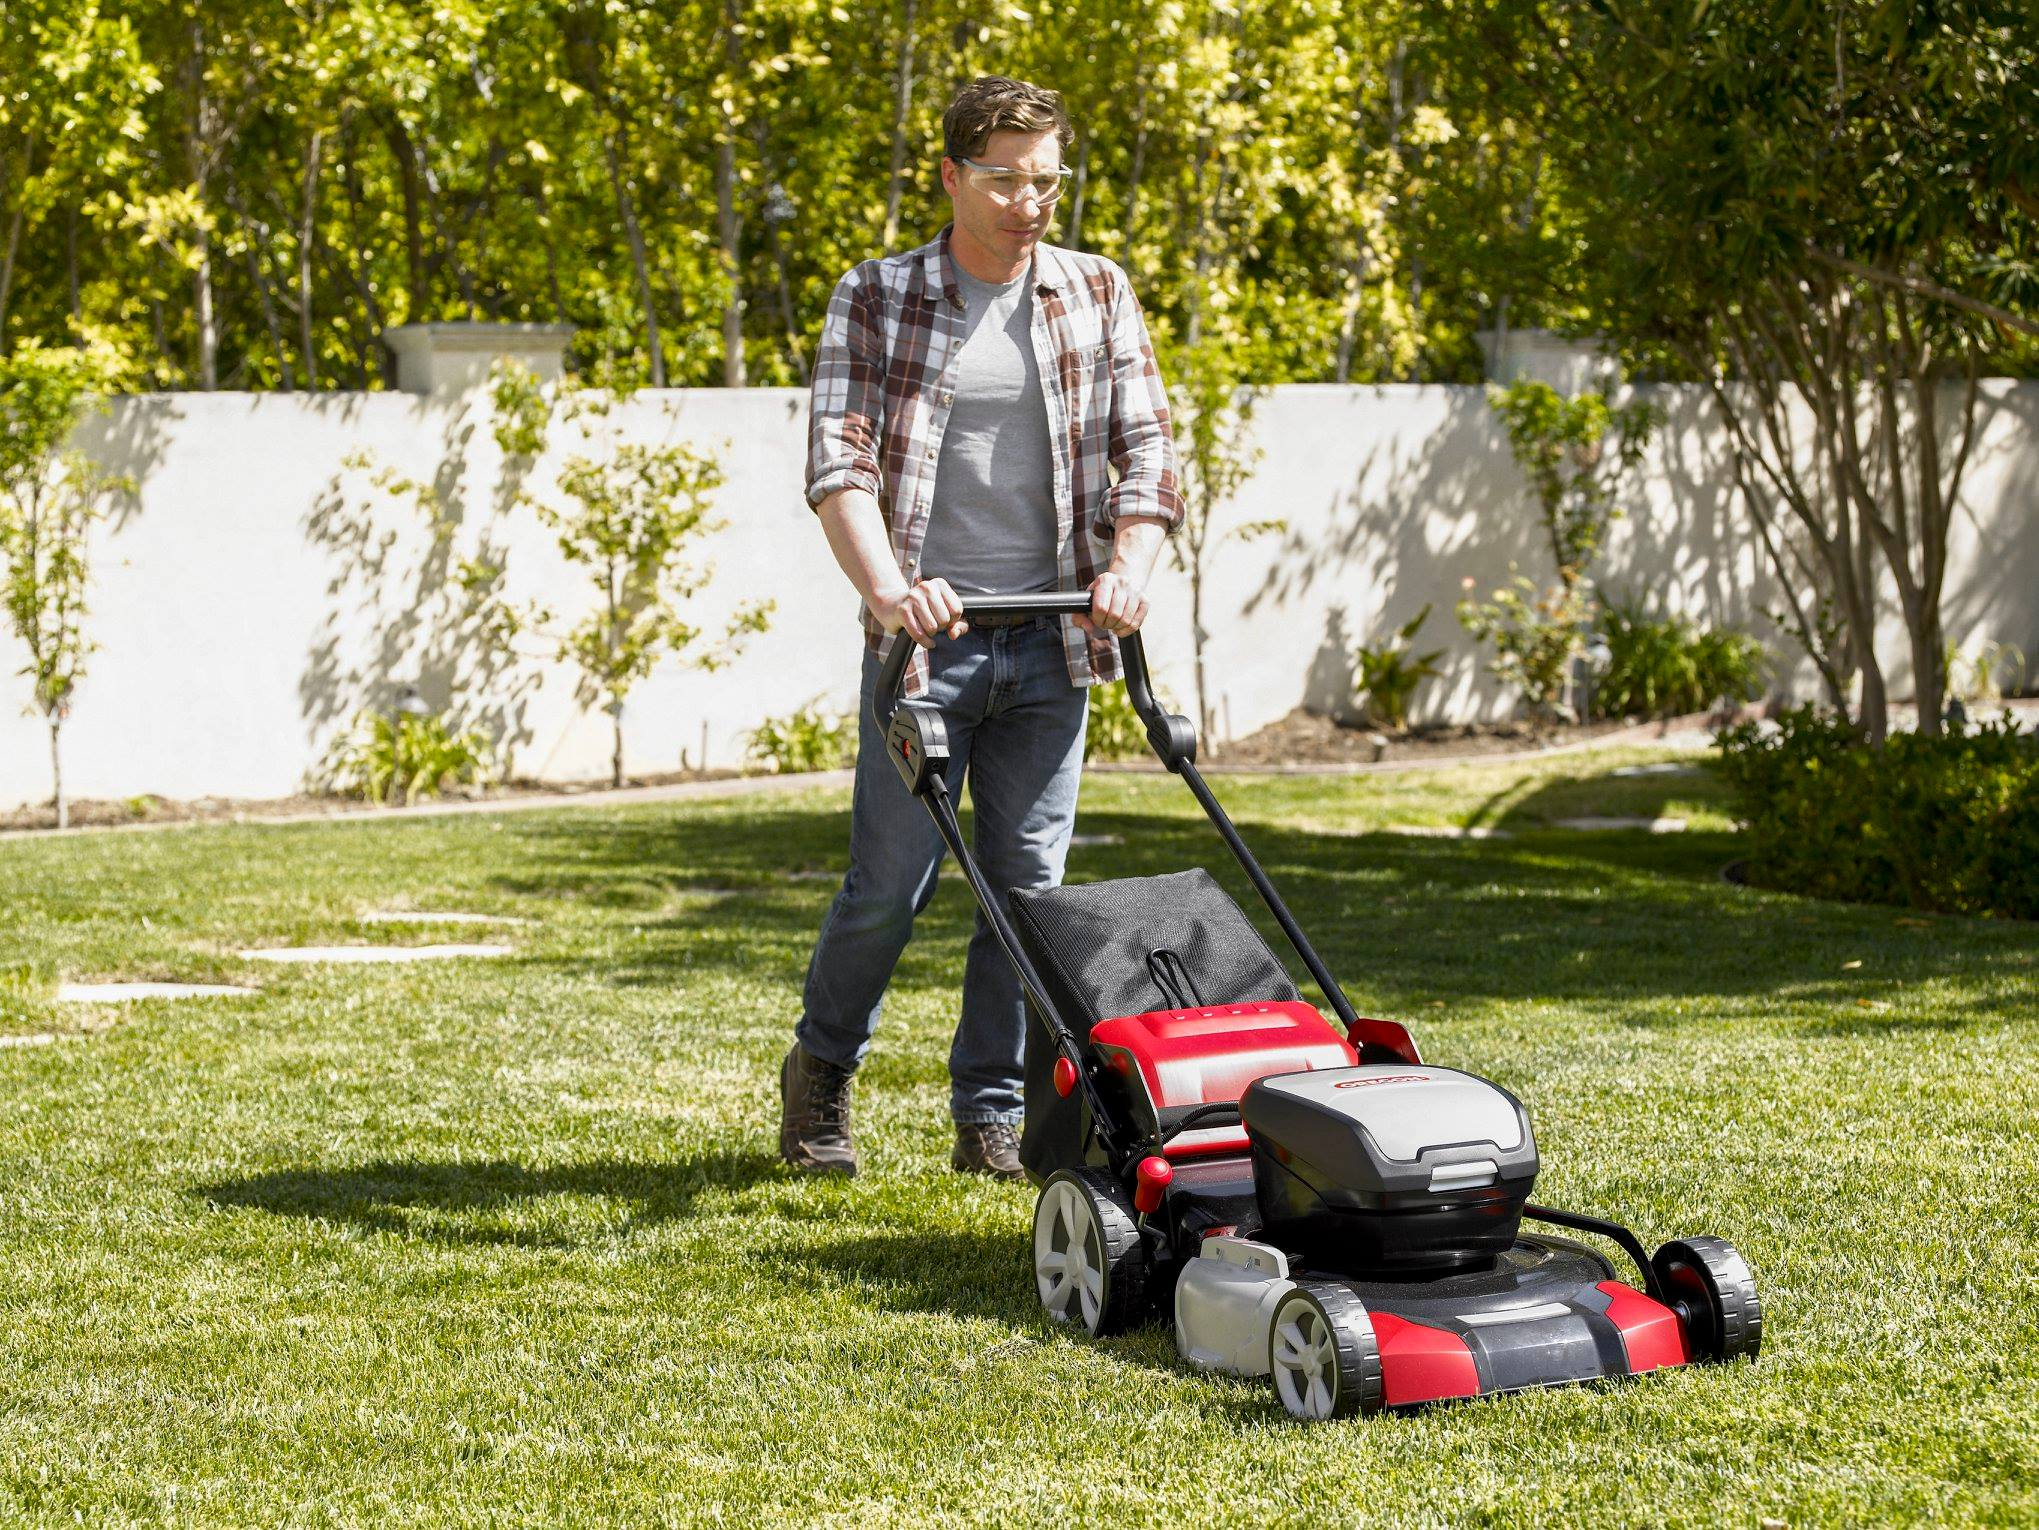 Man using a Toro Walk Behind Mower